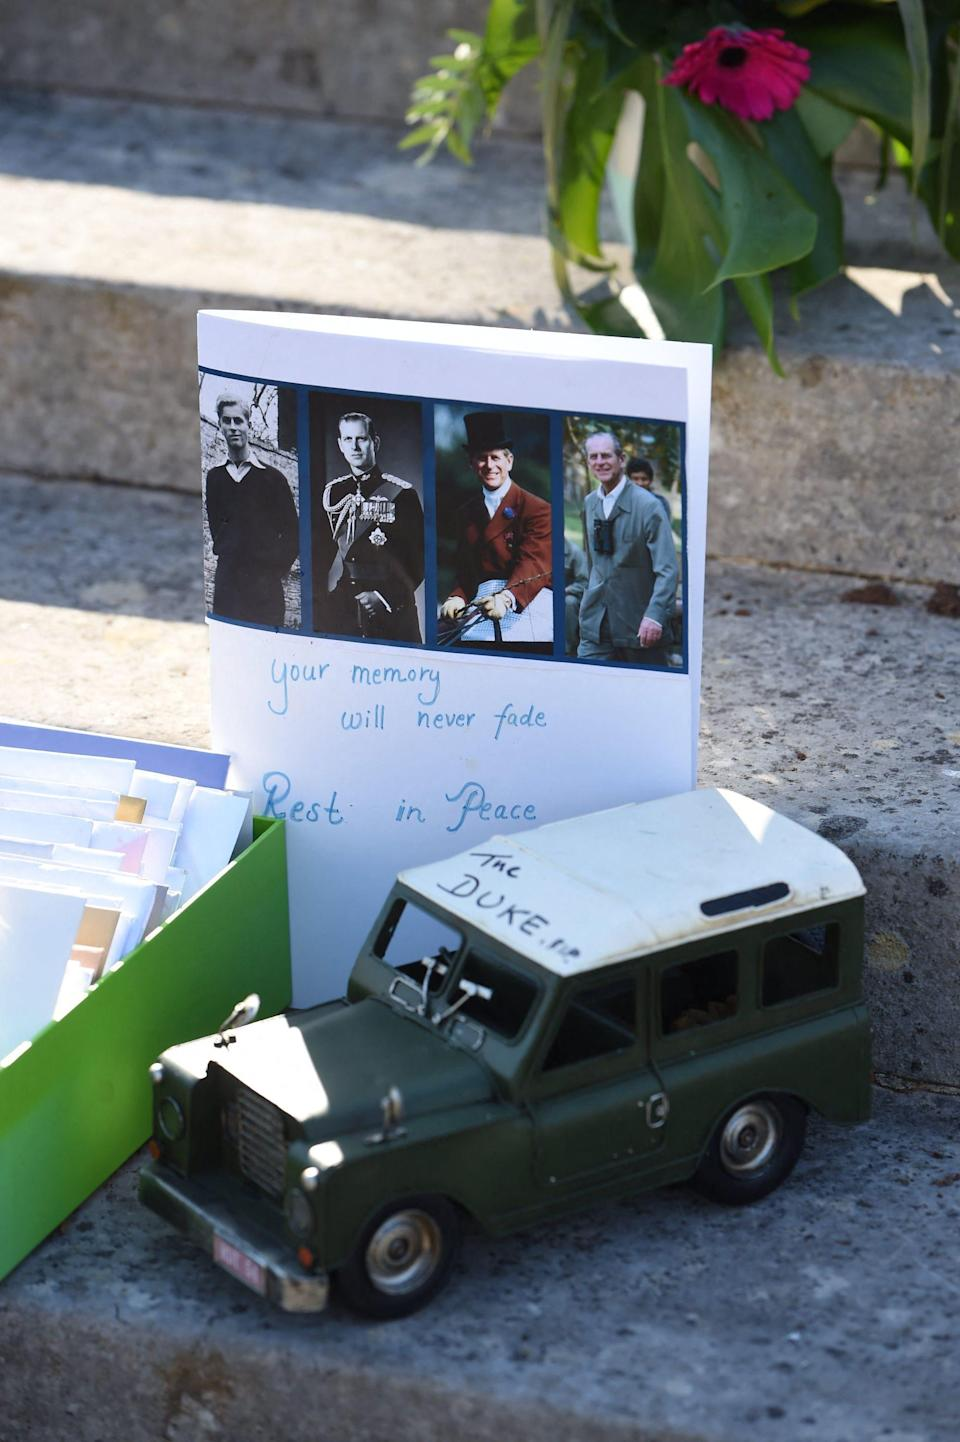 Prince Philip's passion for Land Rovers was well known among his fans. Someone even paid respects to the duke, following his death at 99 on April 9, by leaving a model version of a Land Rover outside Buckingham Palace as a message of condolence.